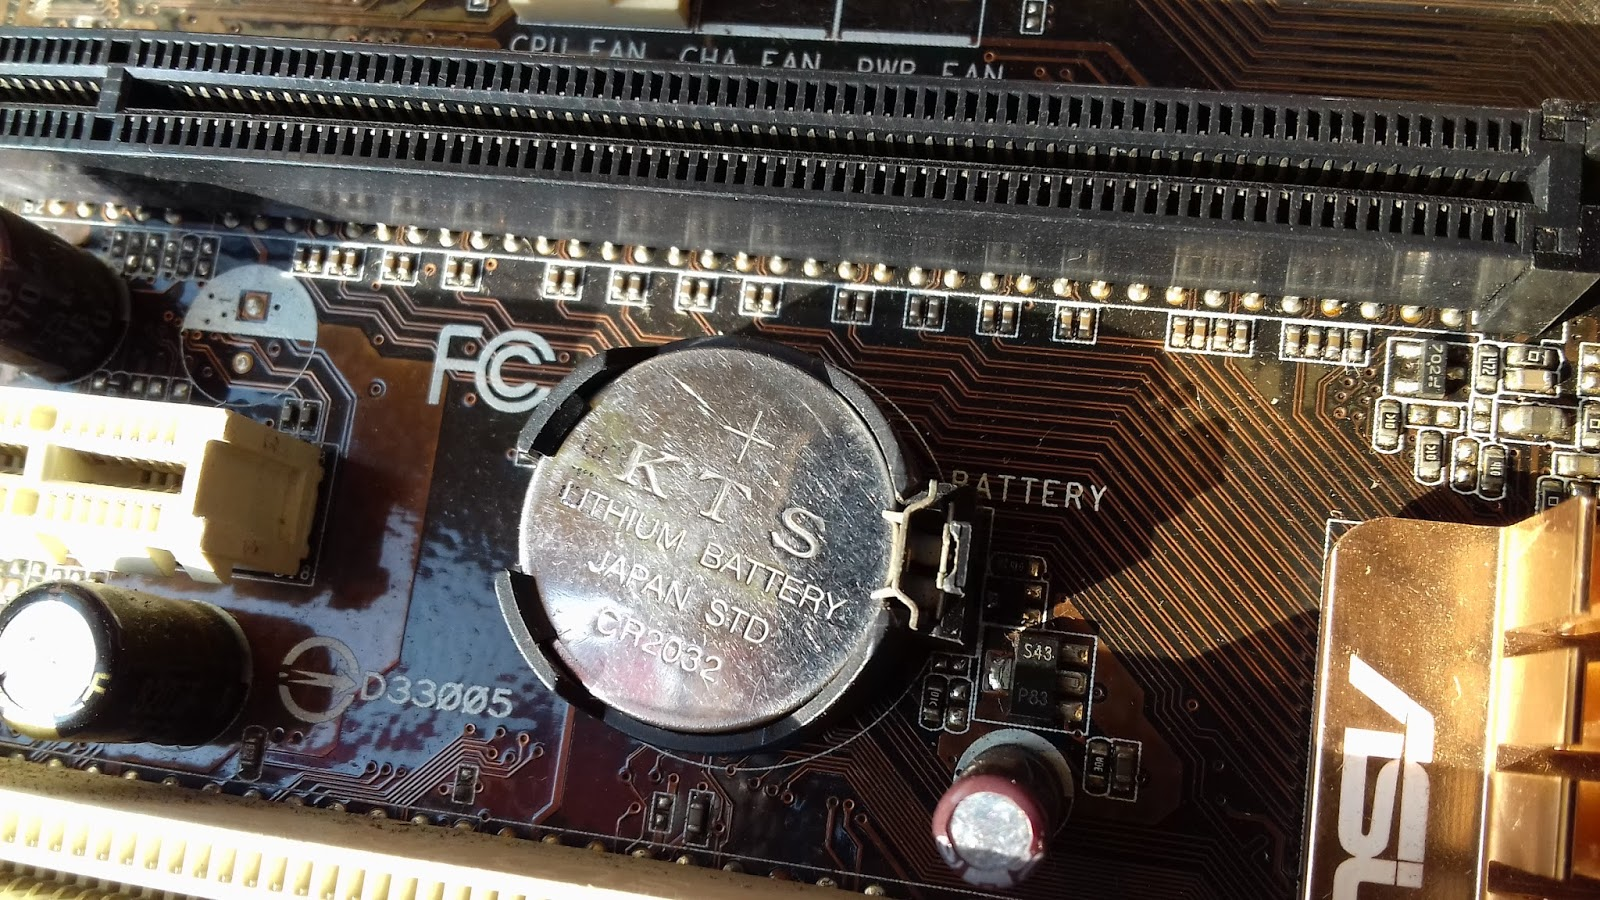 Component of modern Motherboard - mypcfit com is a personal